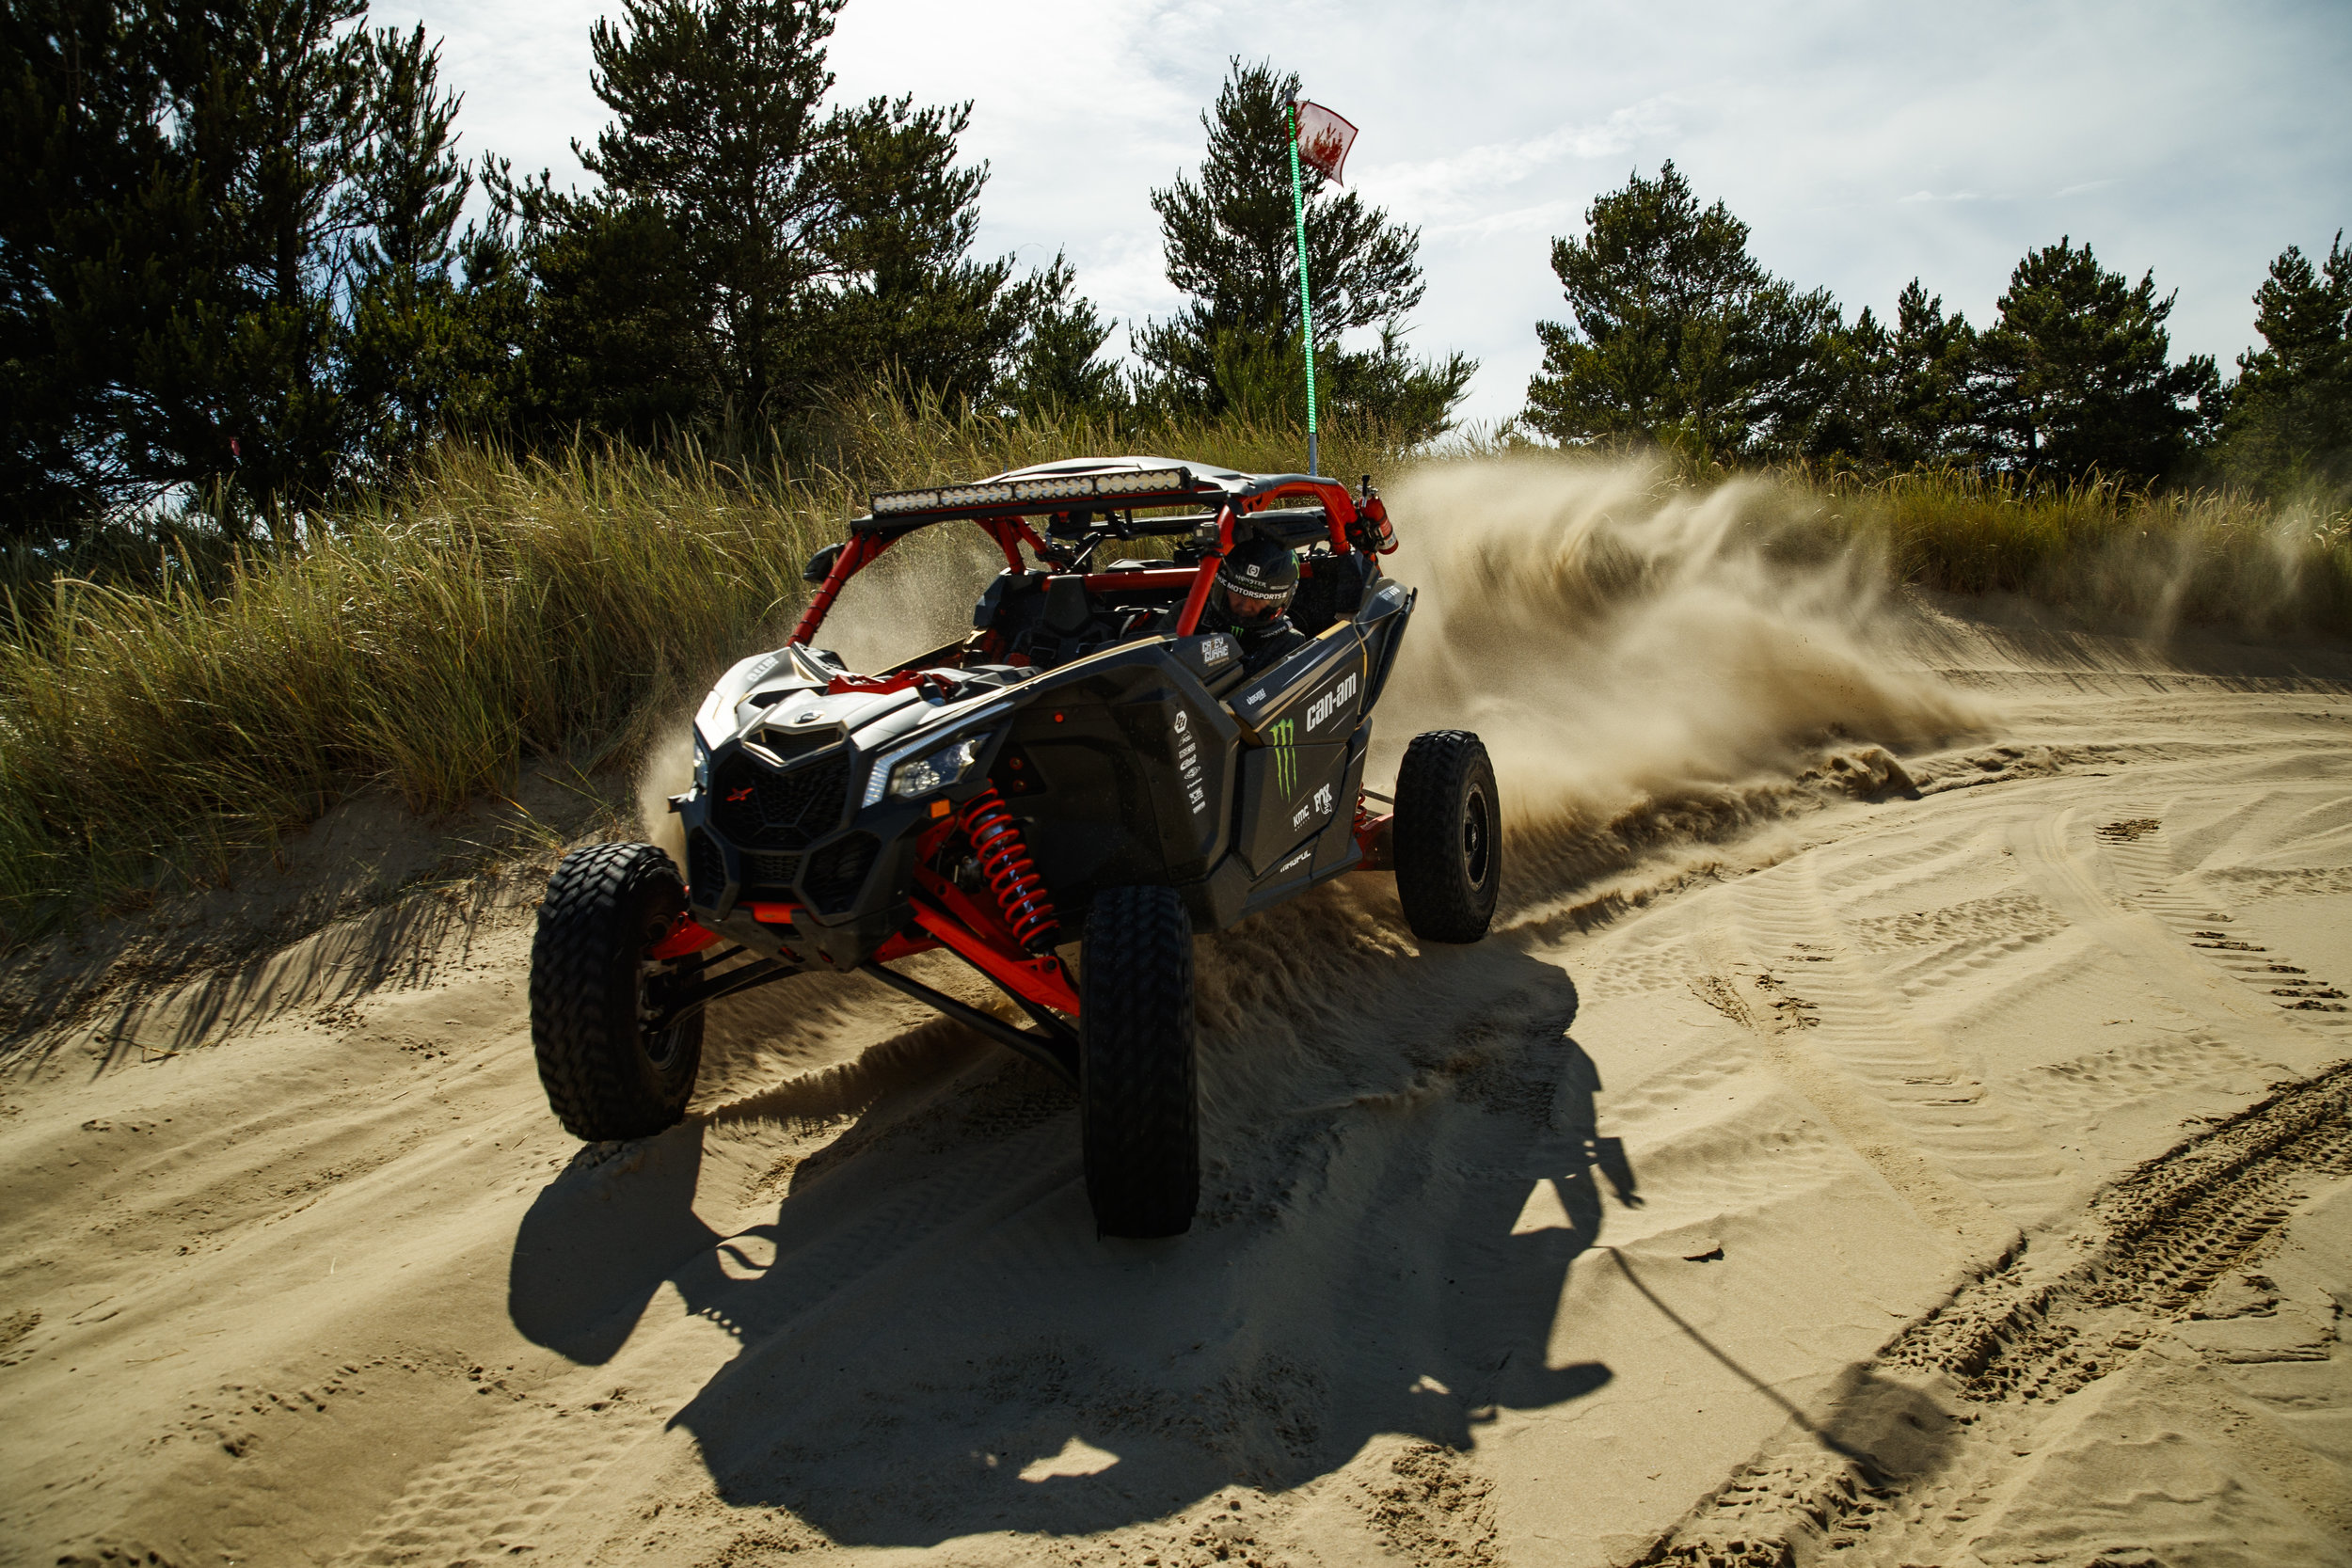 CaseyCurrie_UTVTakeover_CoosBay_Oregon_Can-Am_017.jpg